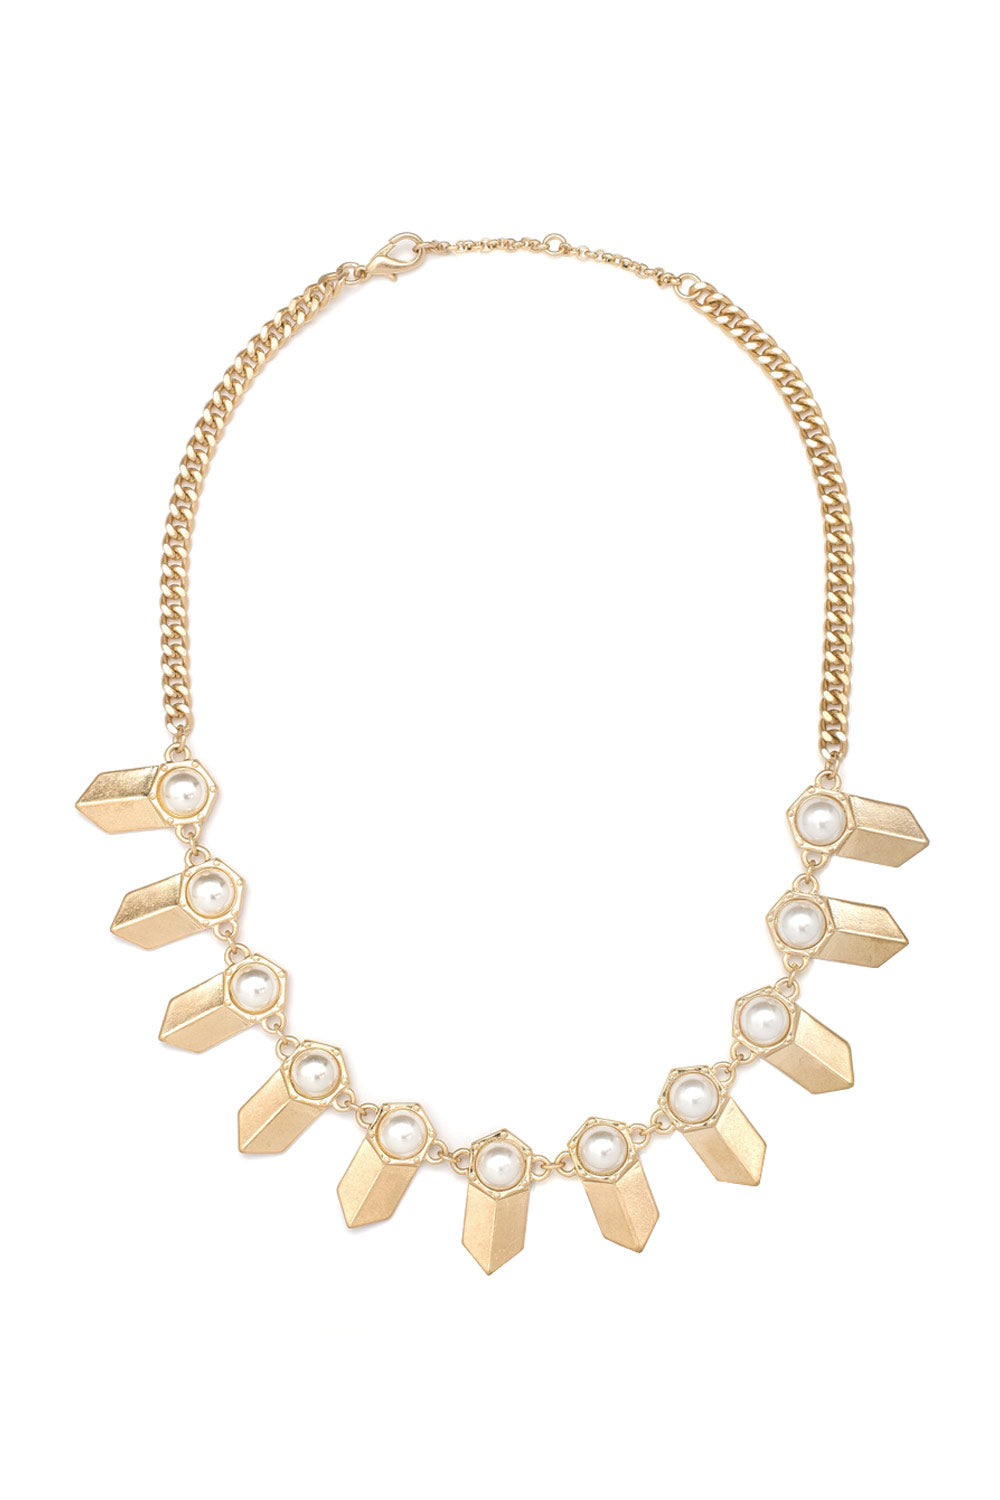 Type 1 Pearl Points Necklace